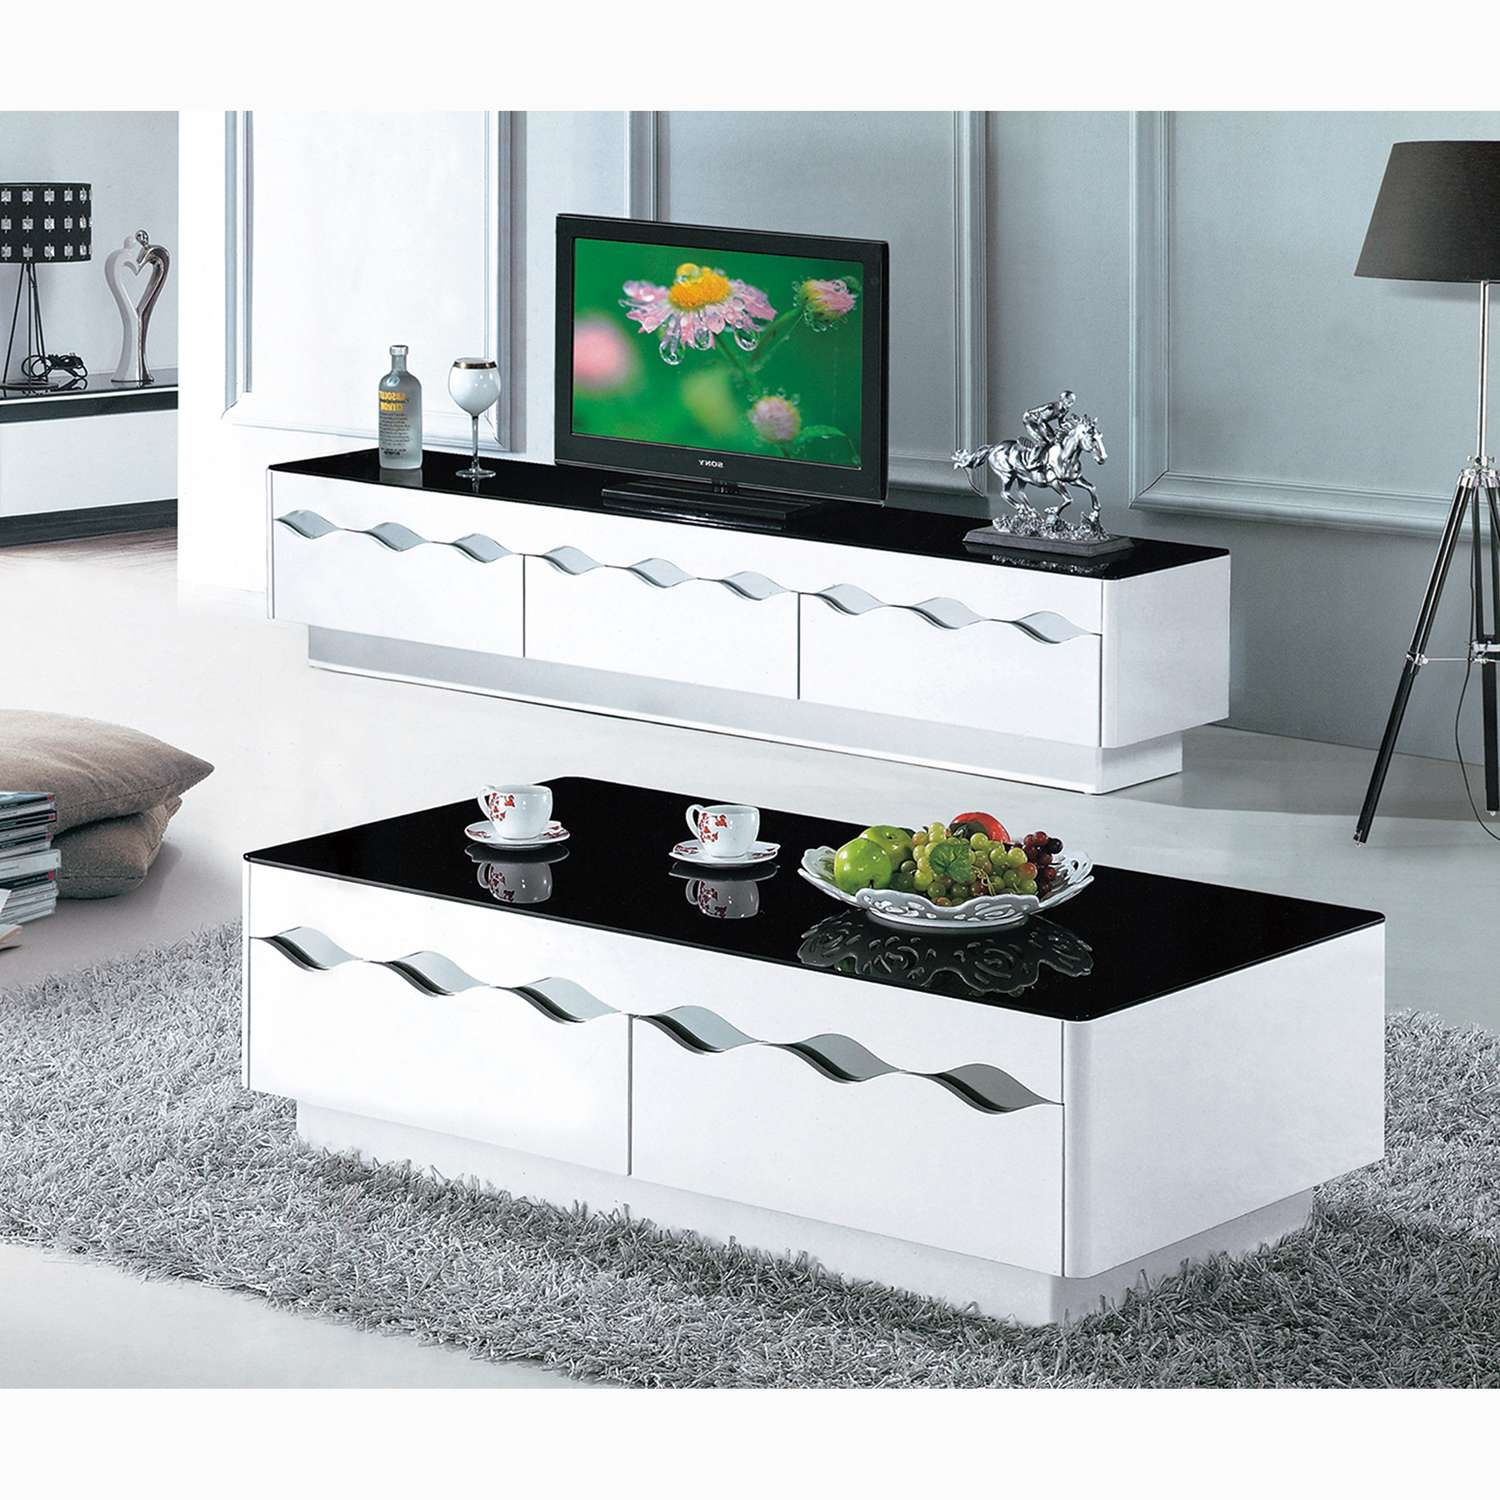 Coffee Table : Black And White Paint Glass Coffee Table Living With Regard To Tv Cabinets And Coffee Table Sets (View 3 of 20)